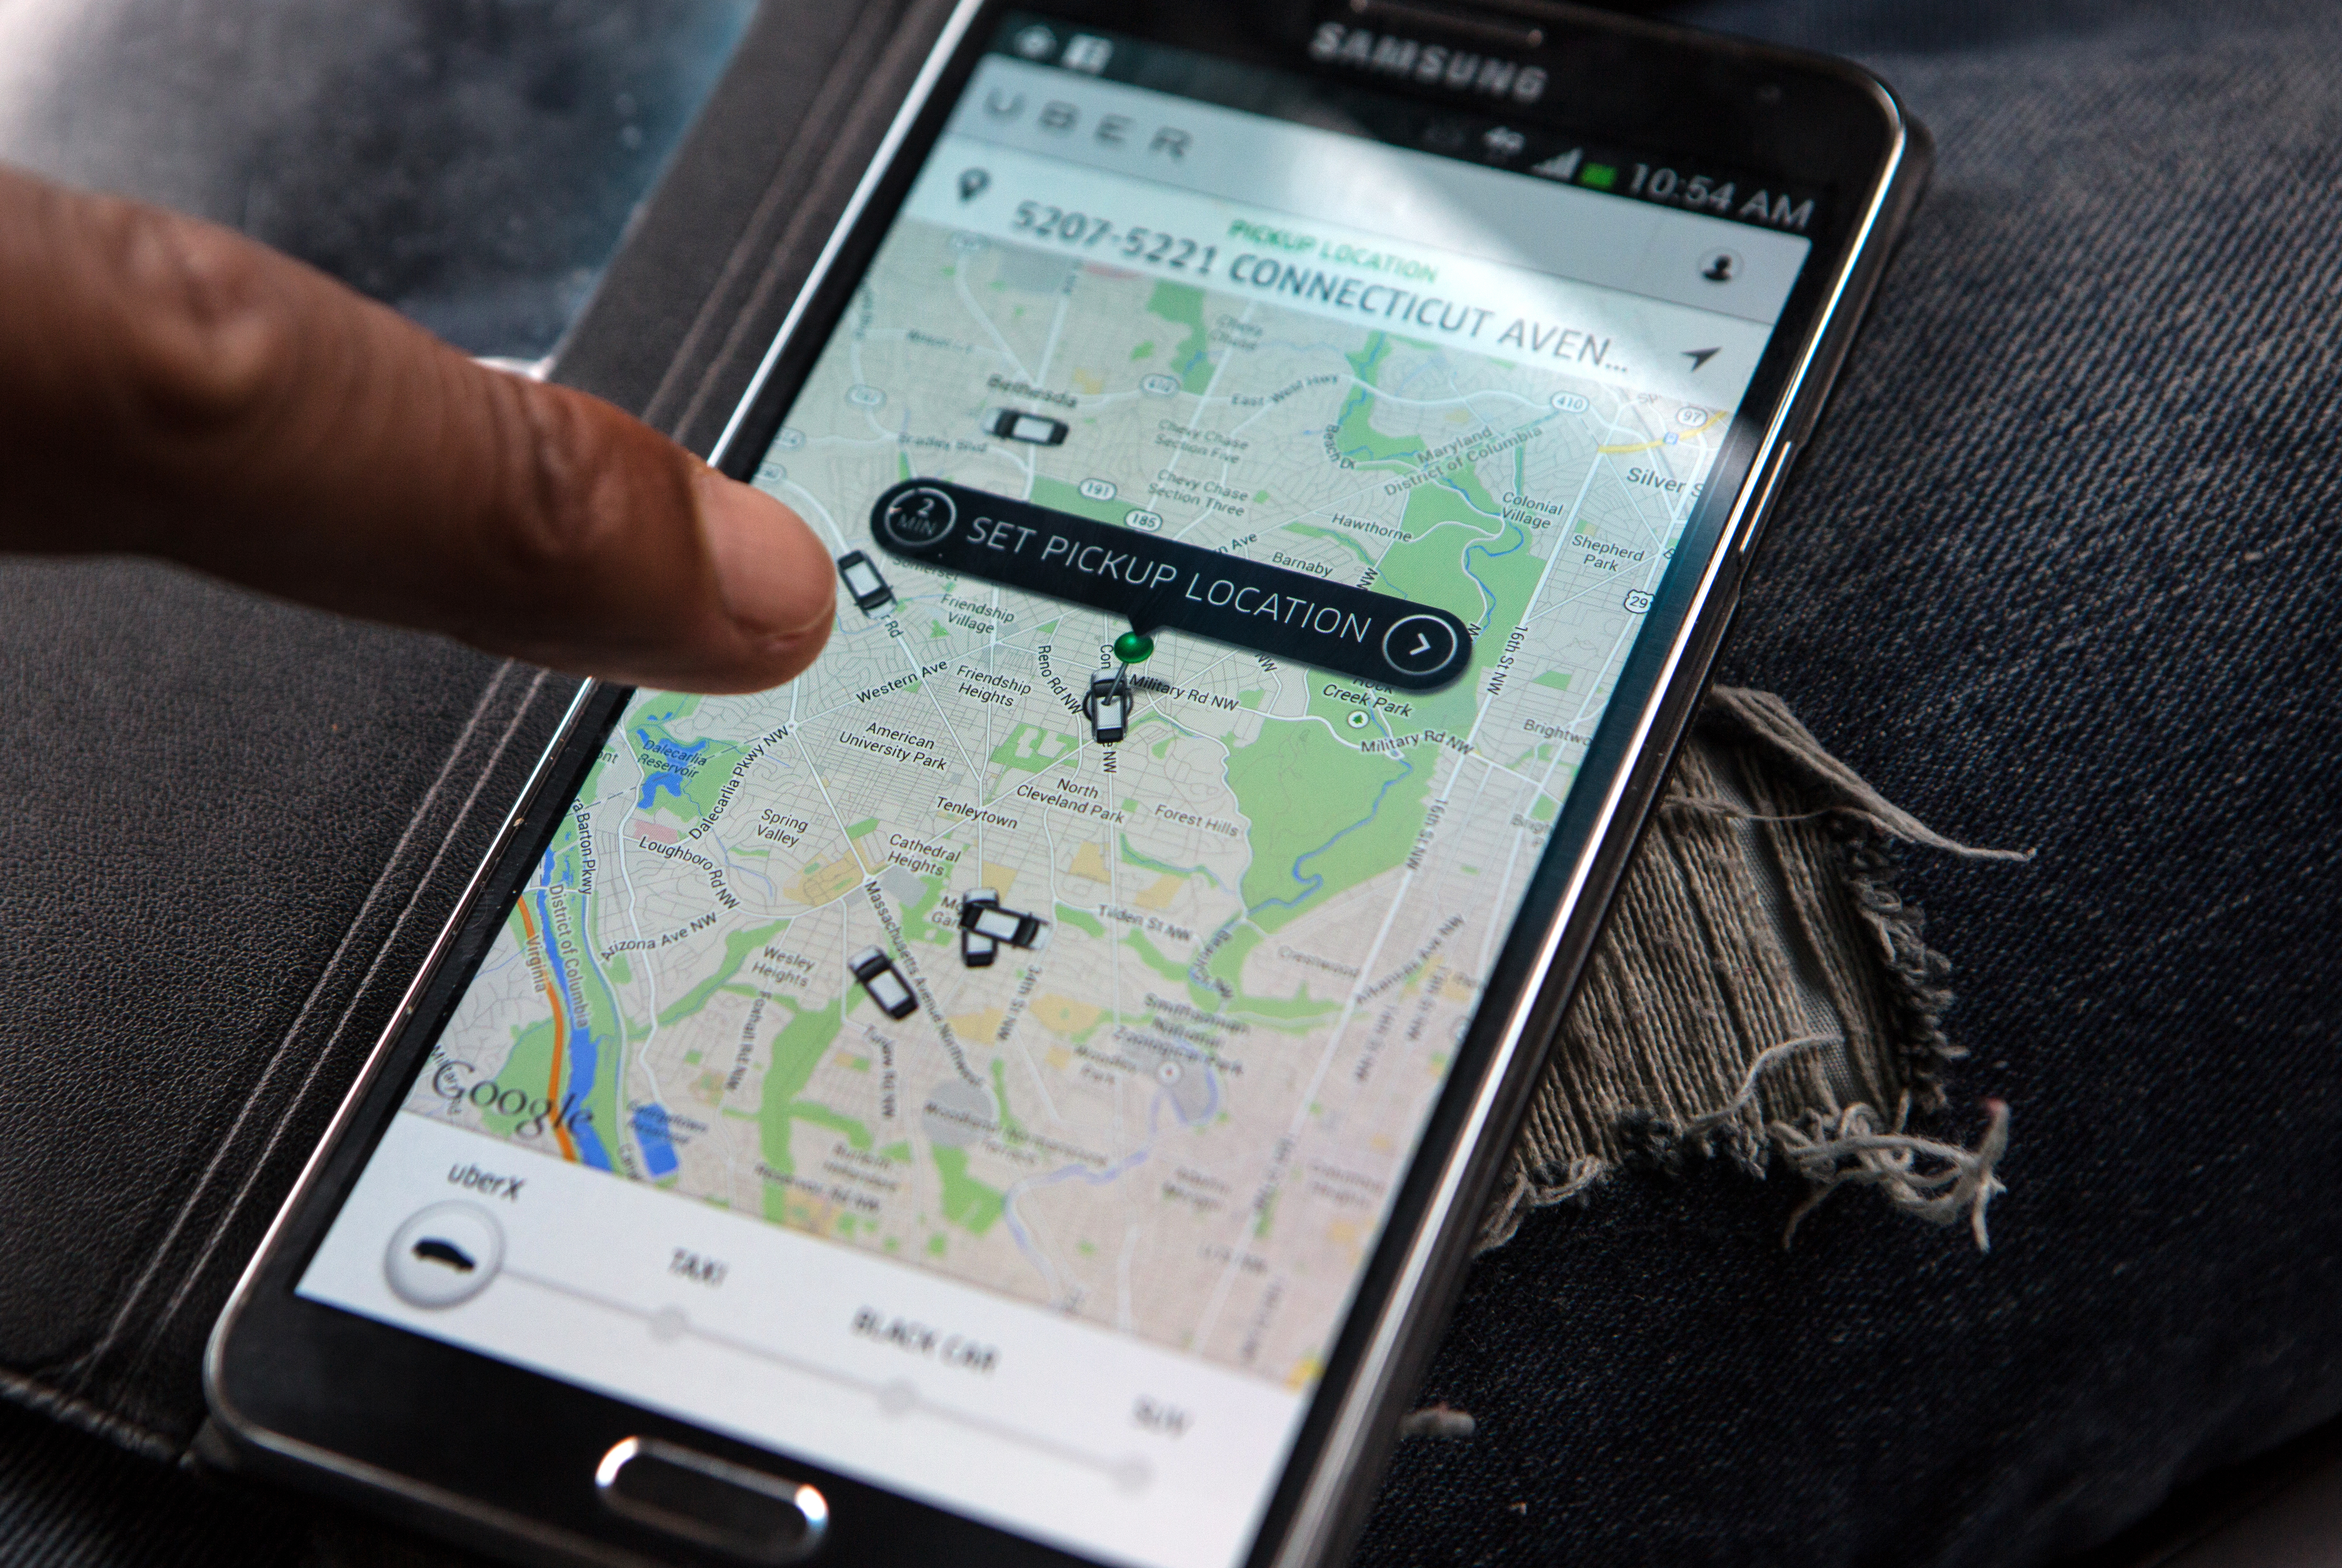 An UberX driver checks the app to see where other drivers are located.